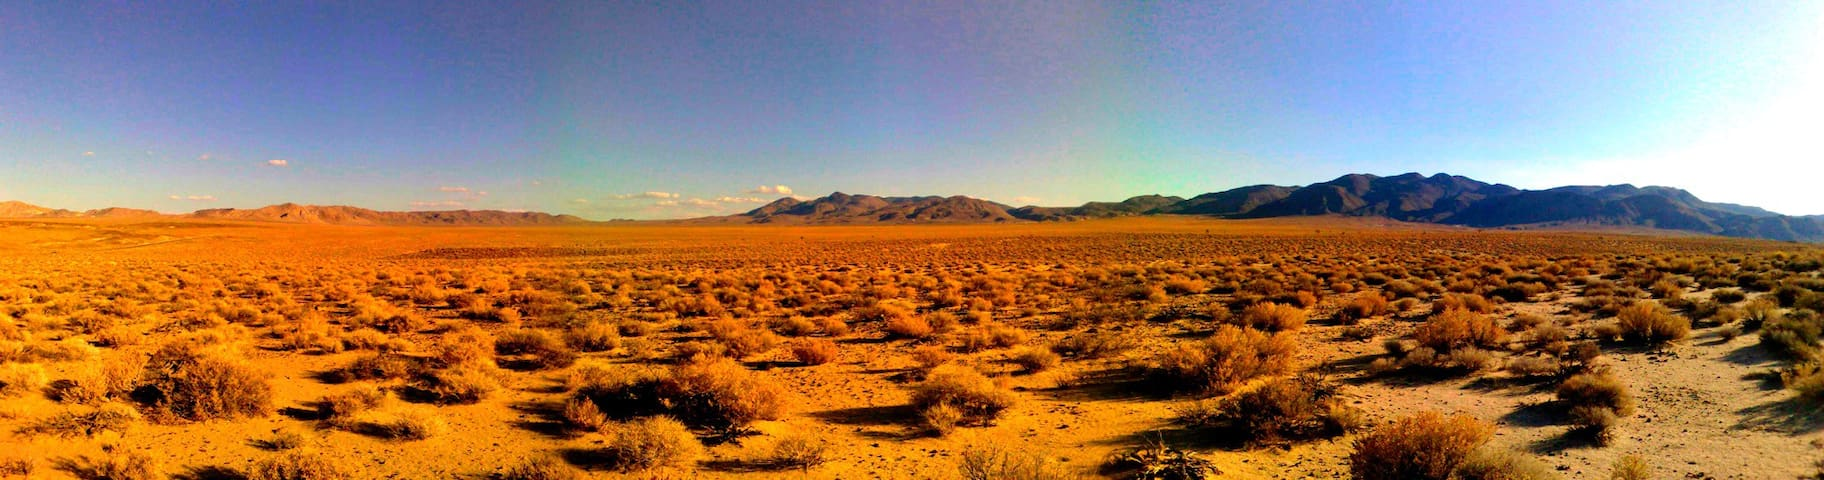 Kern land for Filming or Camping. - Kern/Mojave - 其它